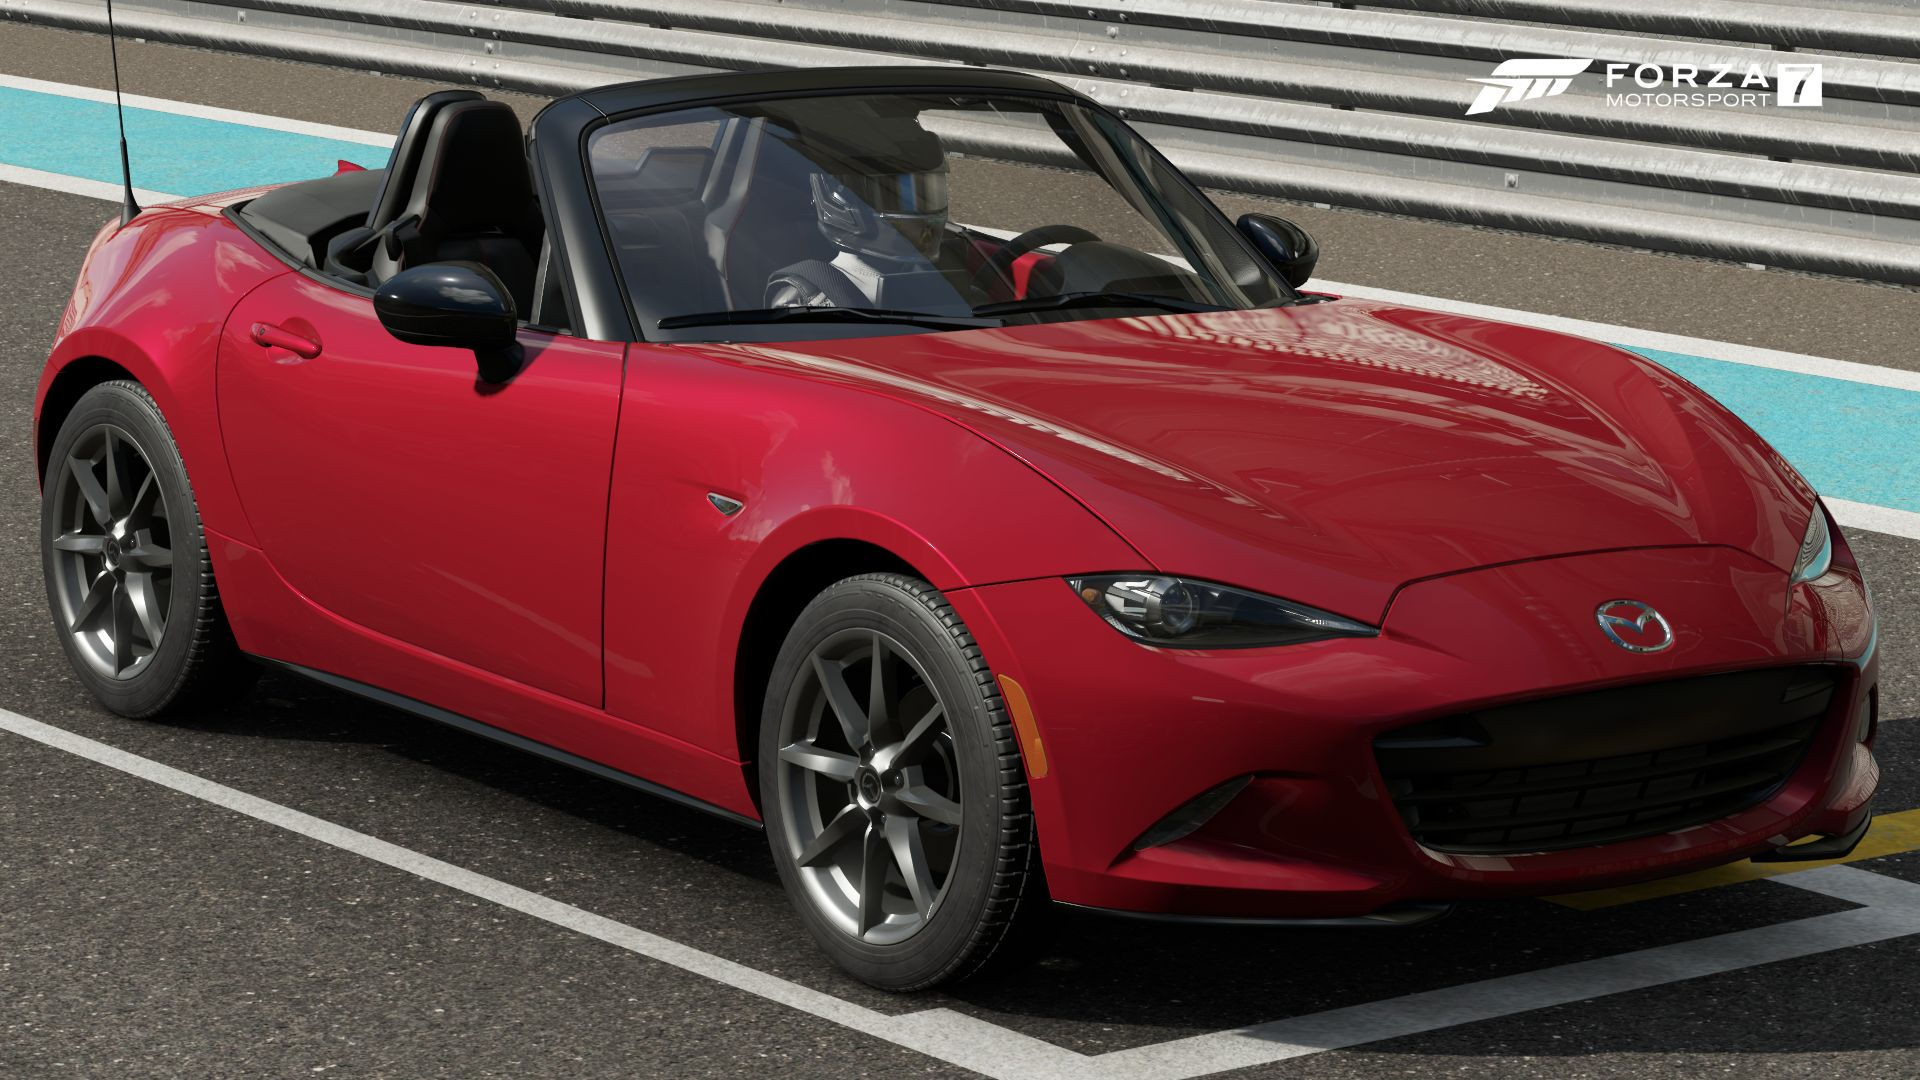 https://vignette.wikia.nocookie.net/forzamotorsport/images/5/5a/FM7_Mazda_MX-5_16_Front.jpg/revision/latest?cb=20180404144013